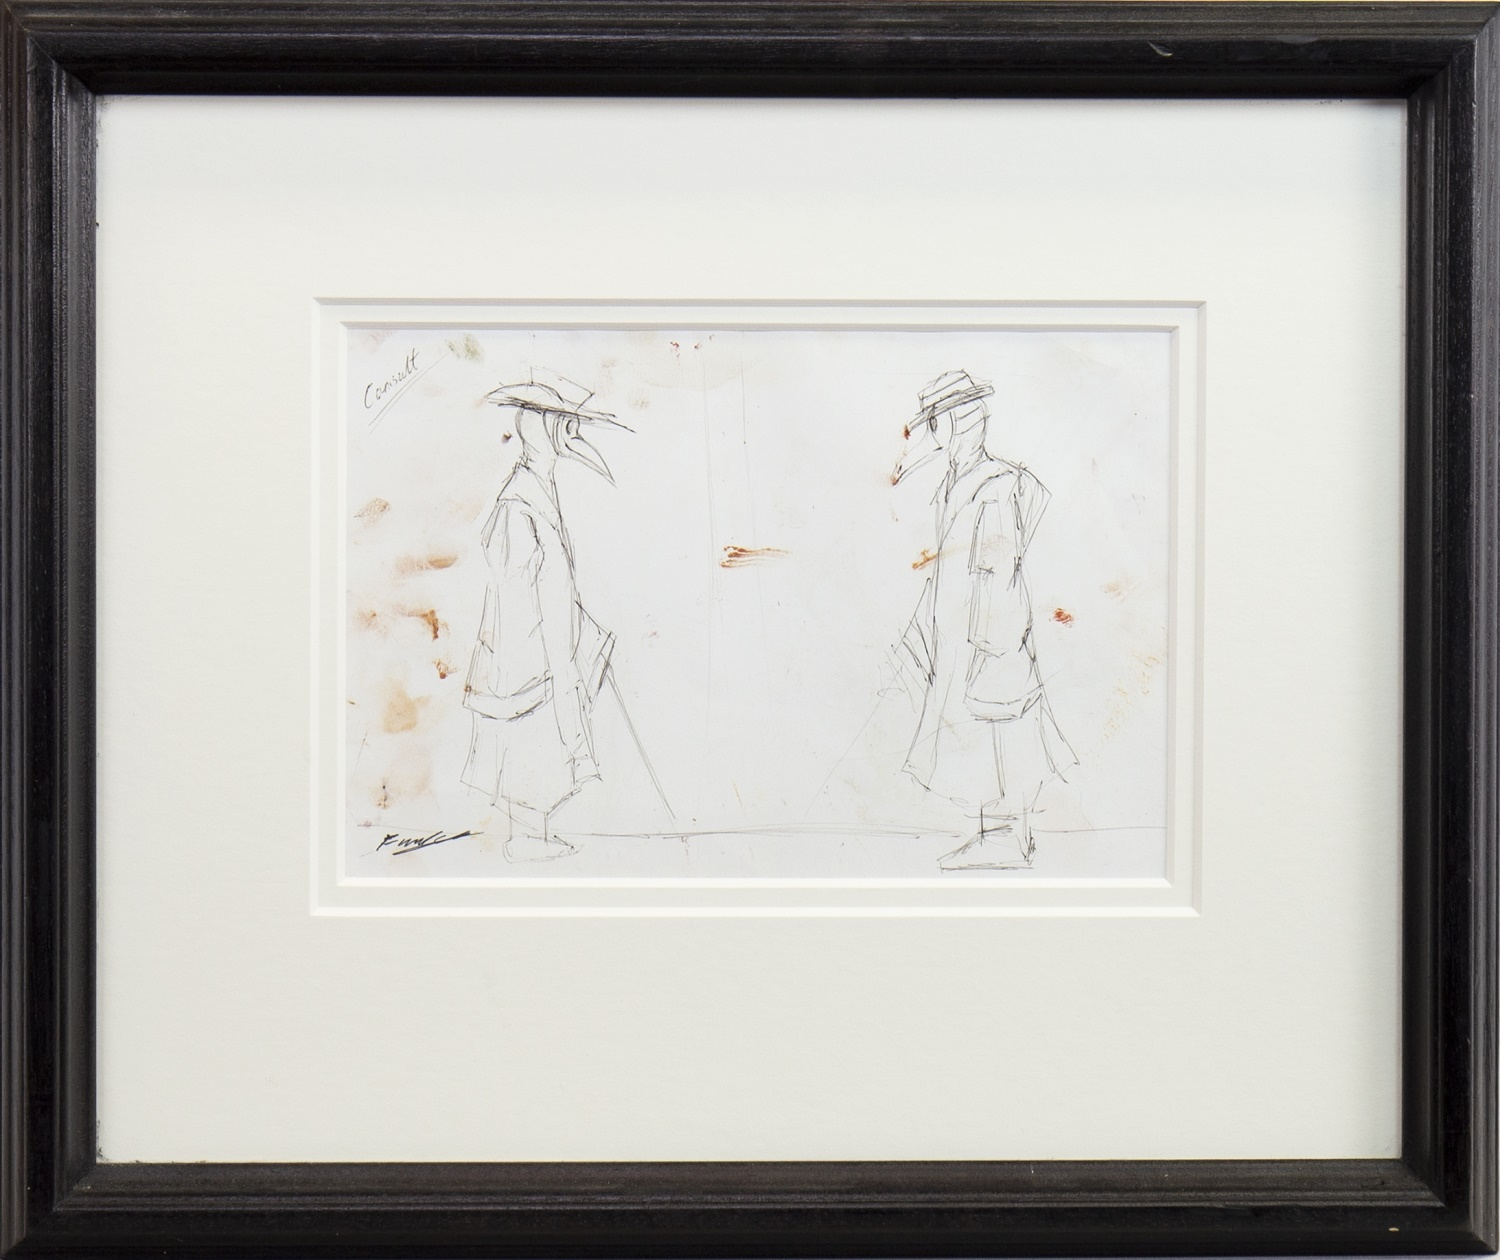 Lot 48 - THE CONSULTATION, A PENCIL SKETCH BY FRANK TO